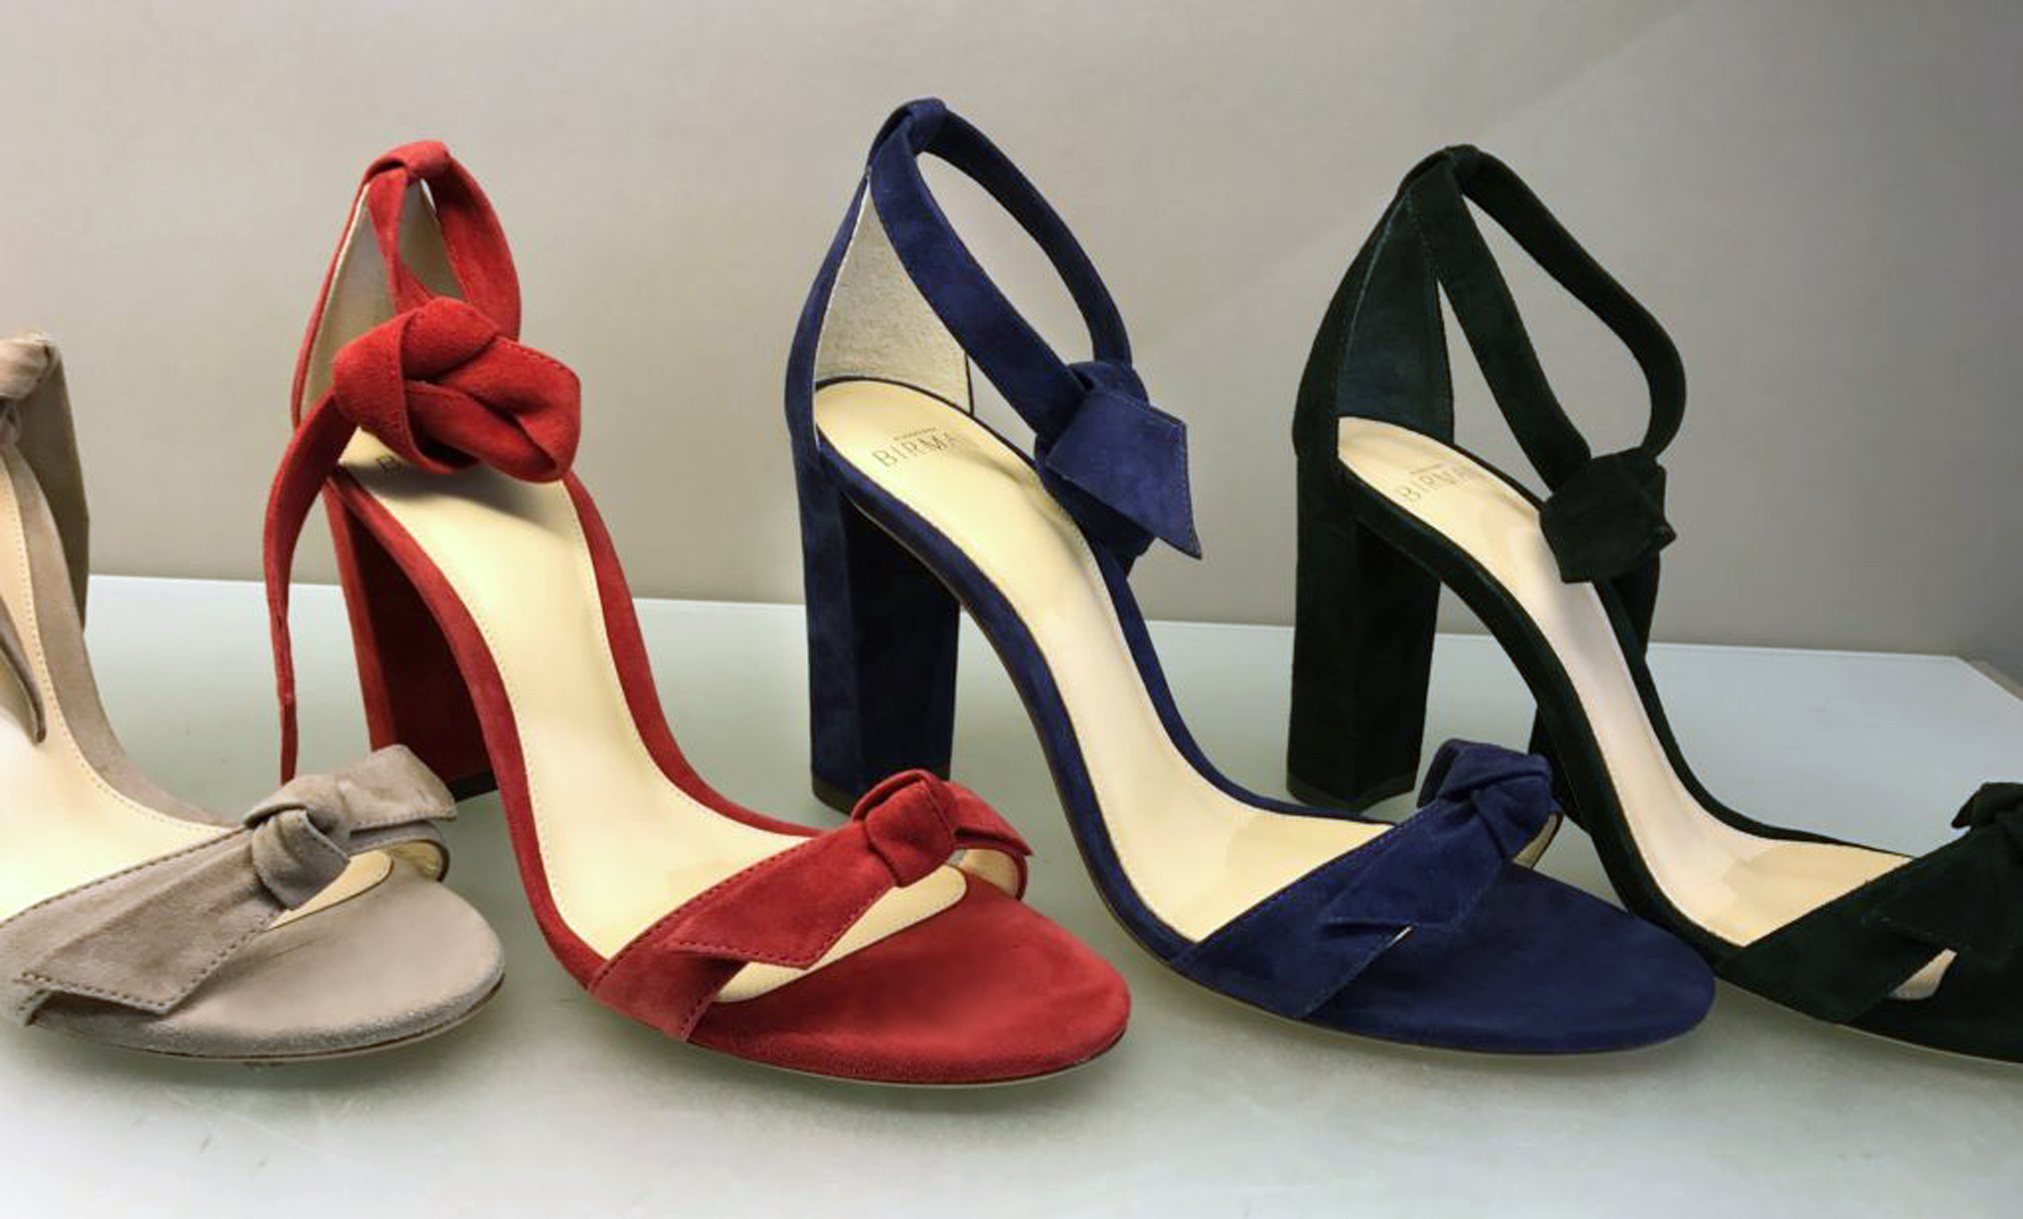 8-pairs-of-shoes-every-woman-needs-1.jpg